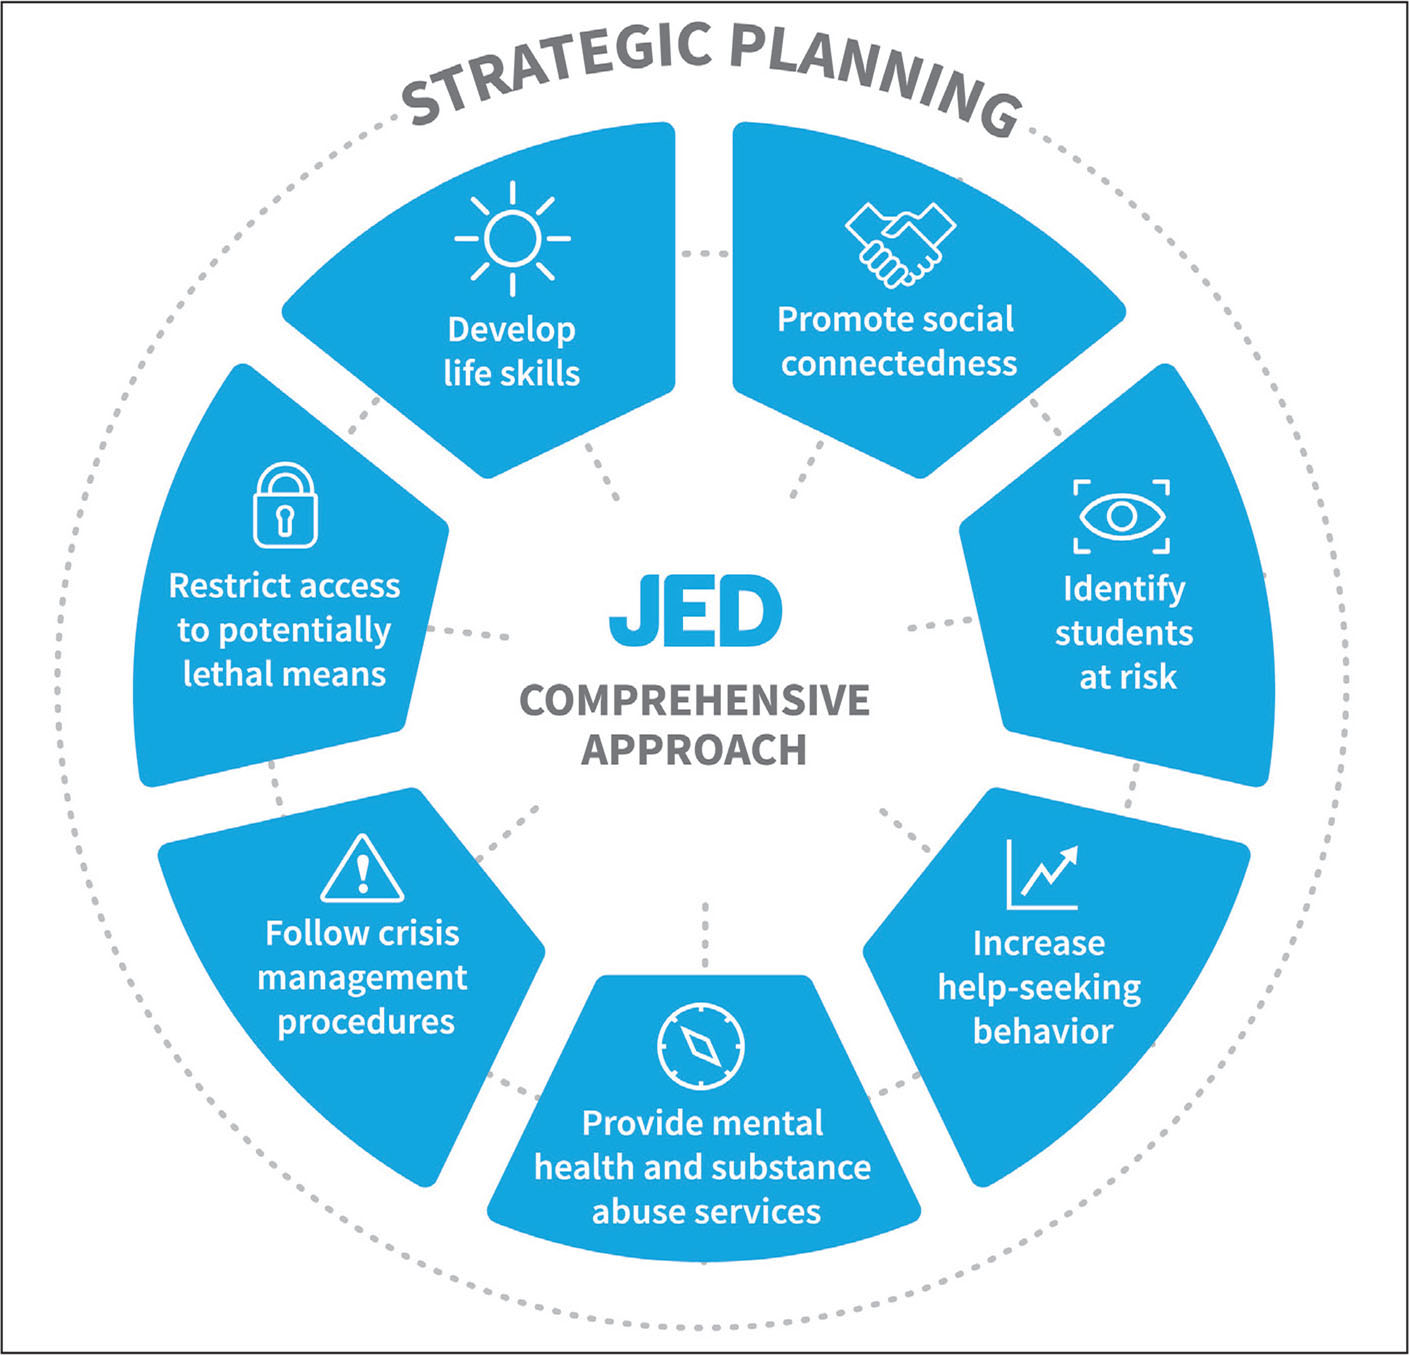 The Jed Foundation's comprehensive approach to emotional and behavioral health. Used with permission from The Jed Foundation.